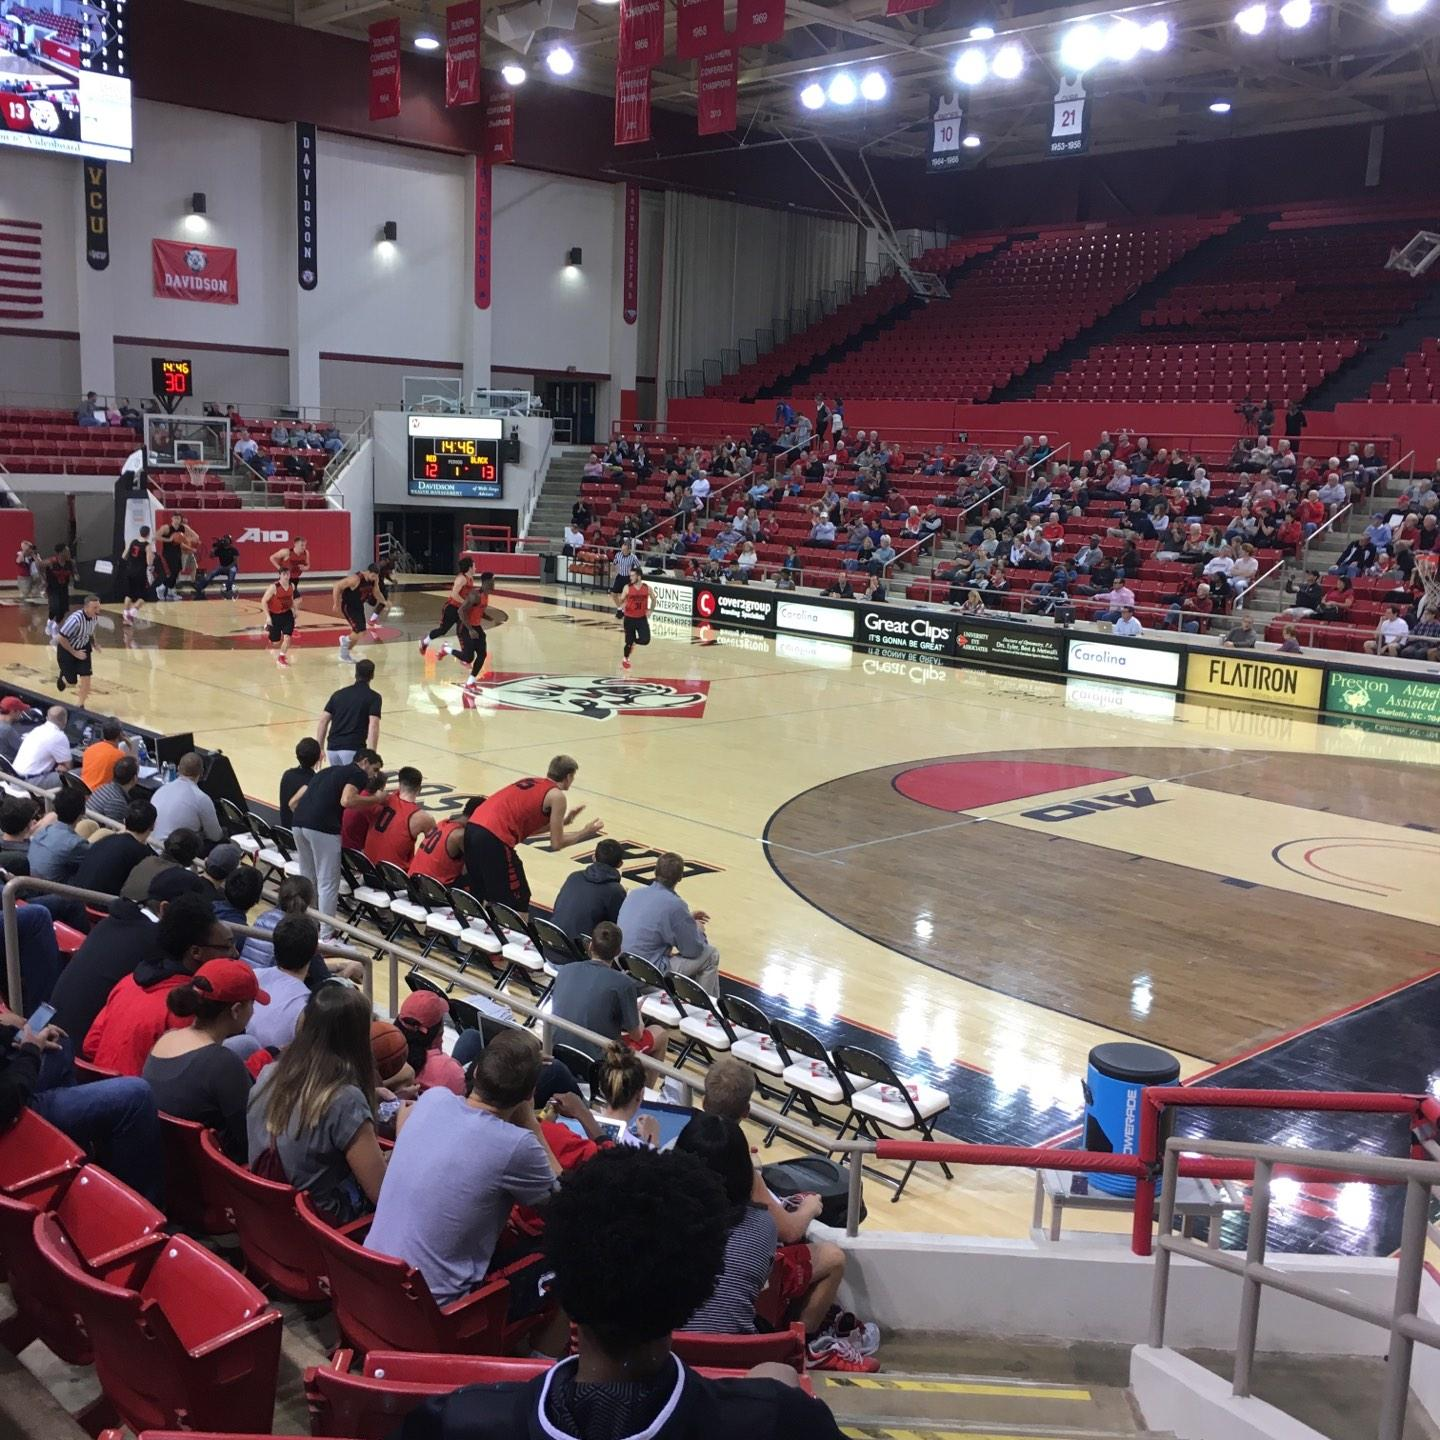 John M. Belk Arena Section 4 Row D Seat 1